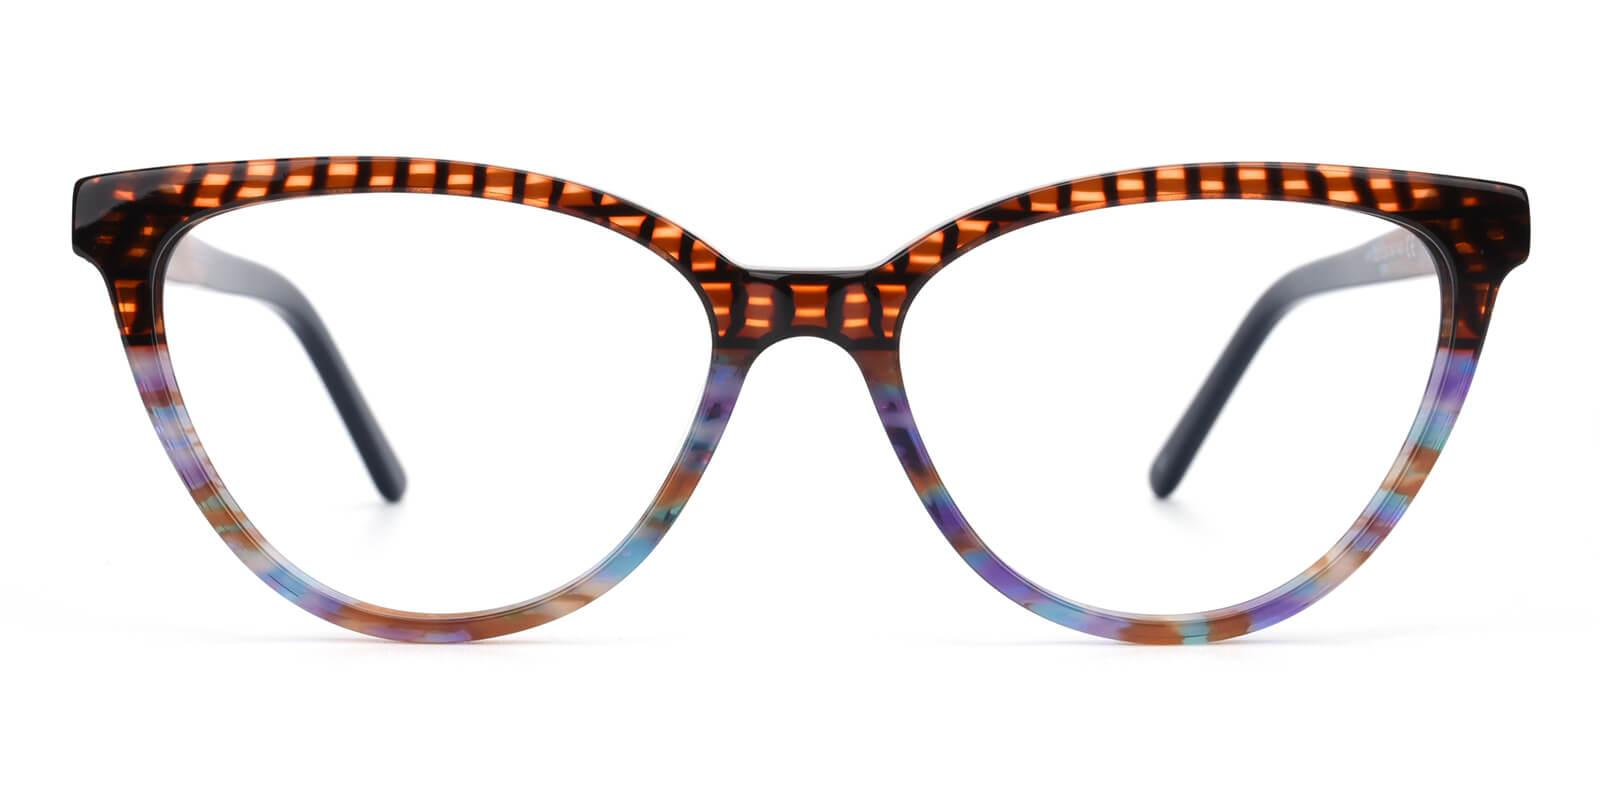 Daphnely-Brown-Oval / Cat-Acetate-Eyeglasses-additional2